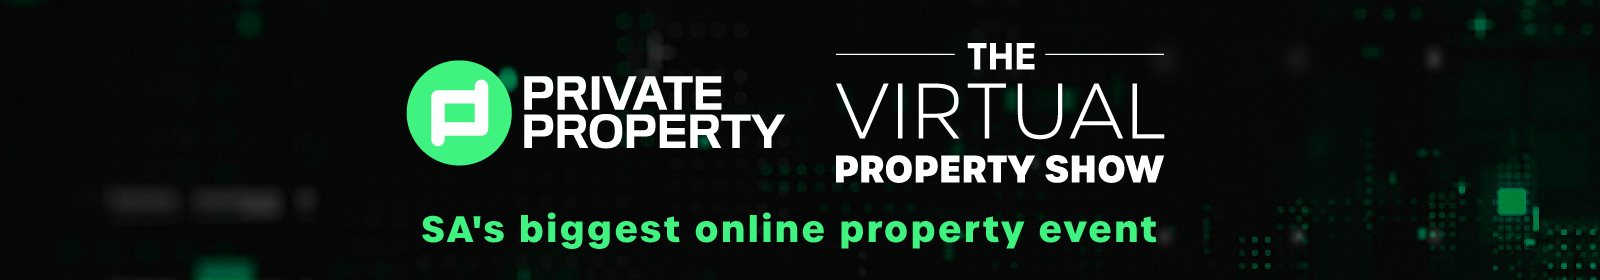 The largest property expo in South Africa, The Virtual Property Show concluded on a high note